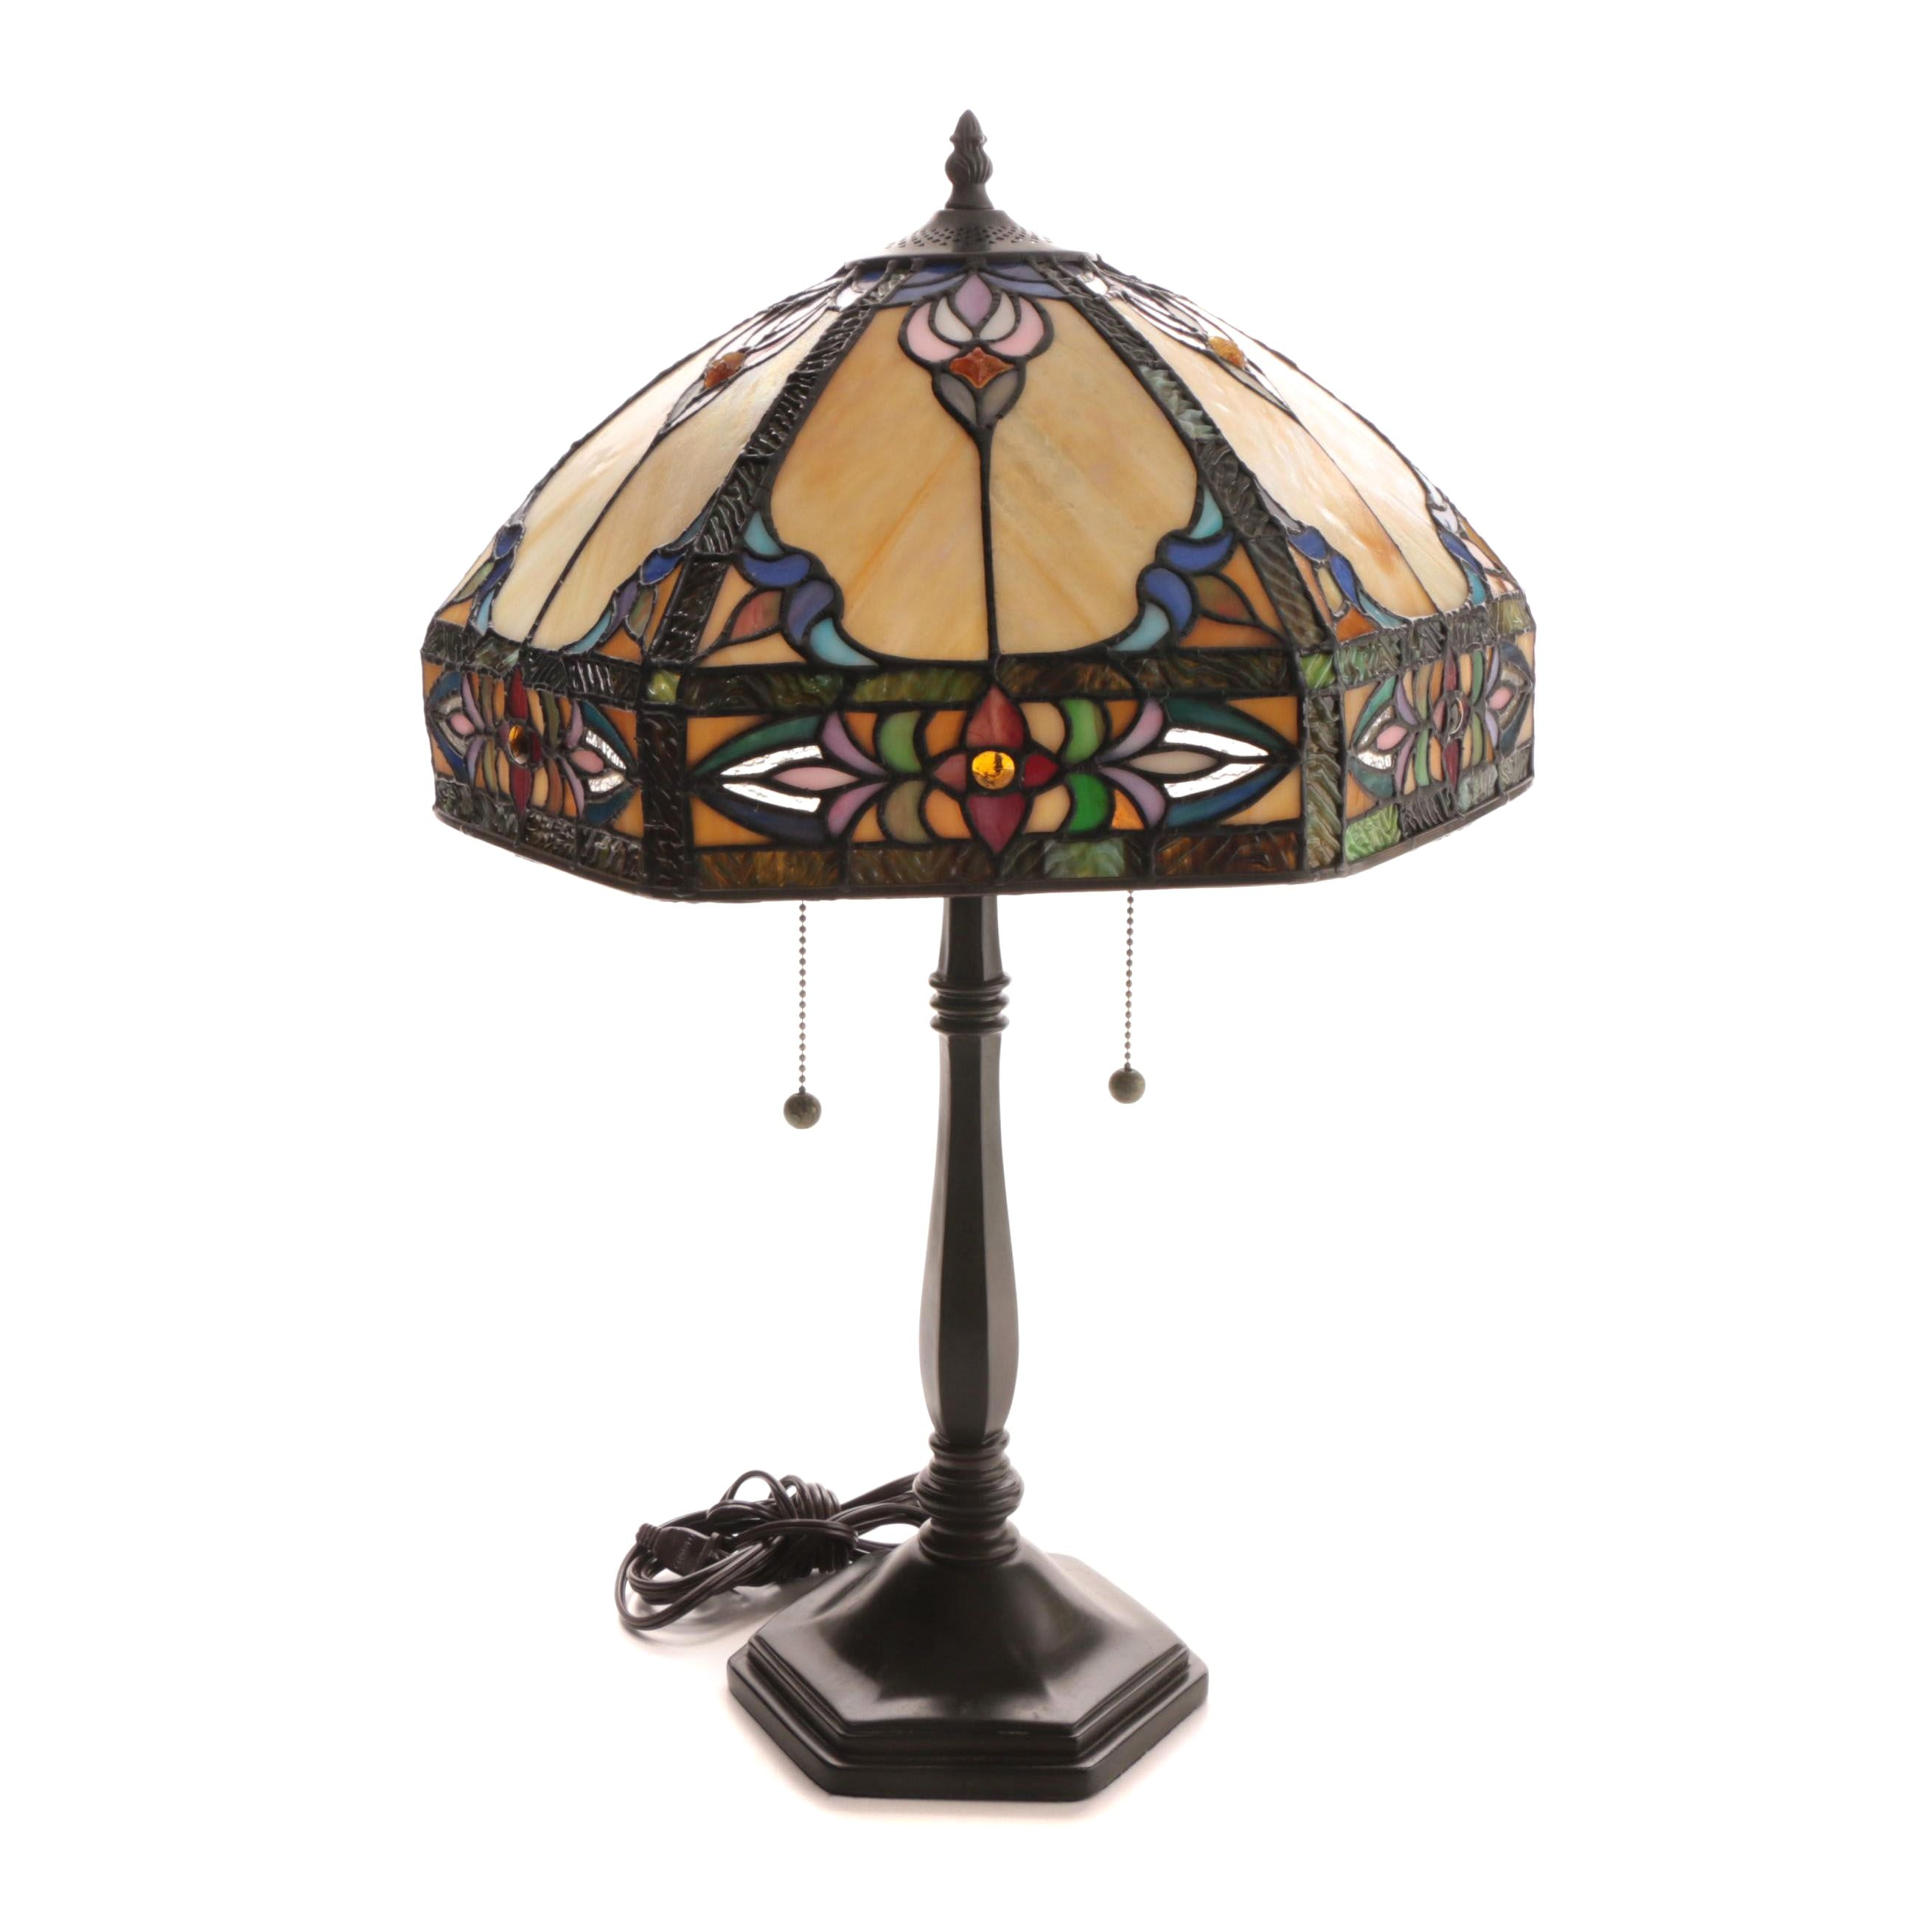 Cast Metal Table Lamp with Stained and Slag Glass Shade